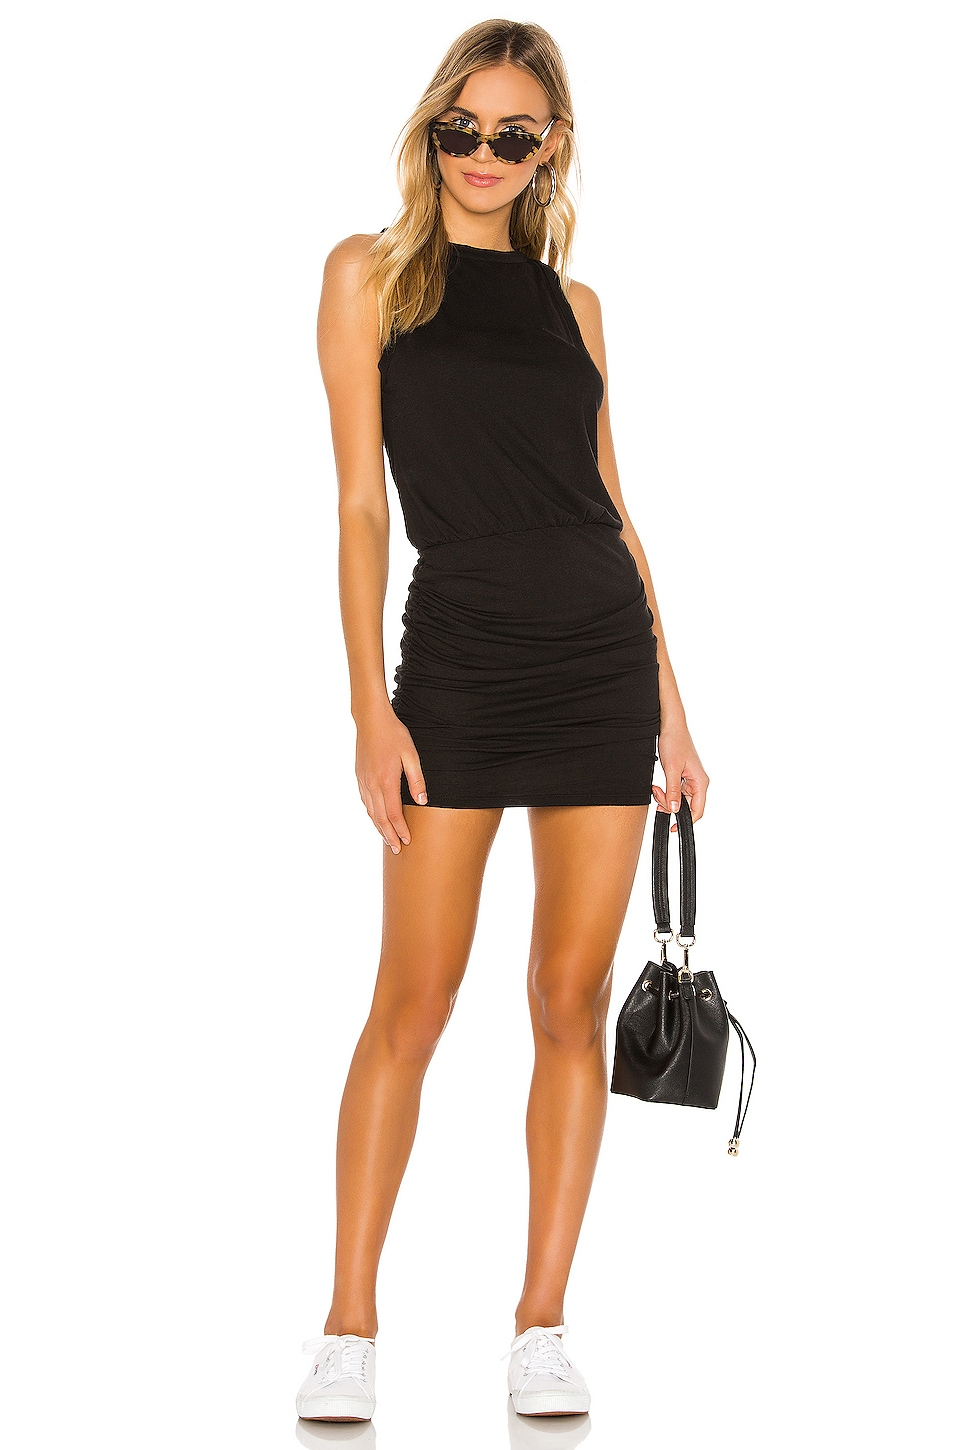 N:philanthropy Dresses N:PHILANTHROPY MAJORCA DRESS IN BLACK.